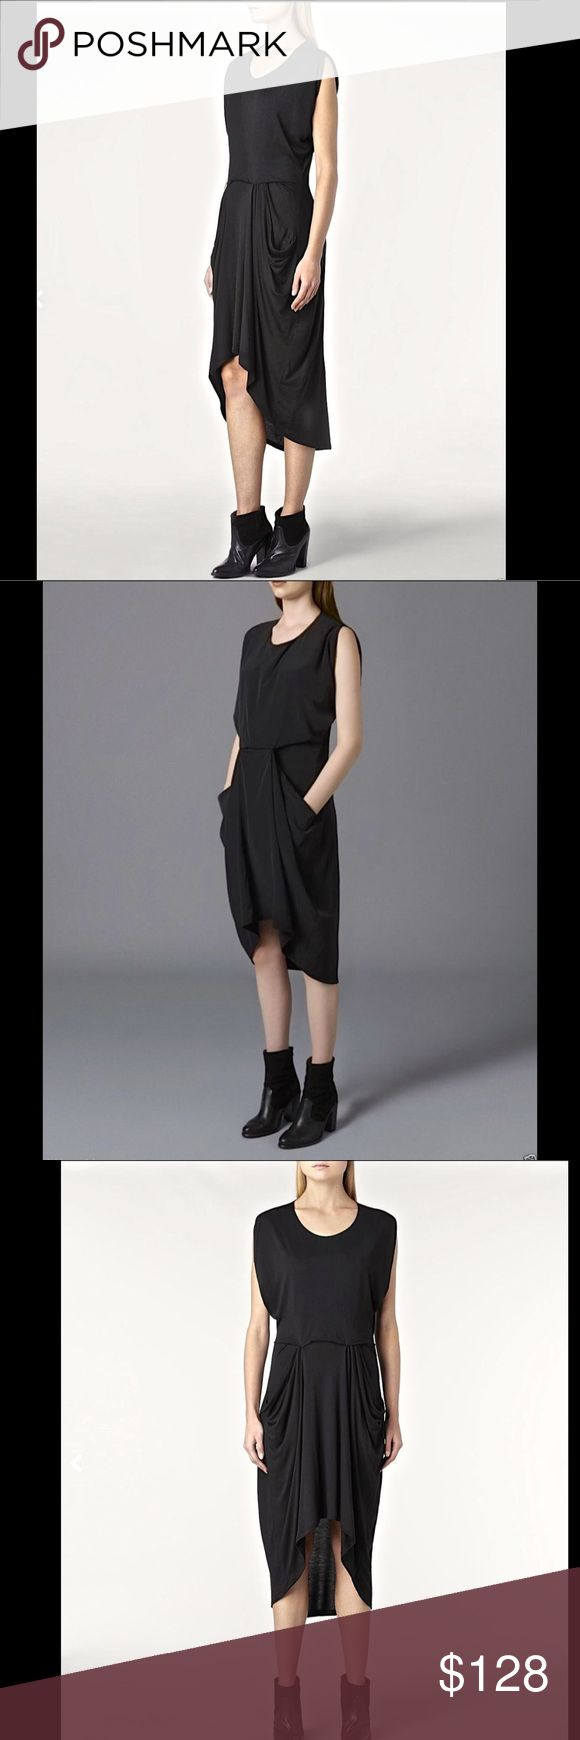 "AllSaints black soft drapy Midi Maxi hi lo Dress 4 AllSaints black soft drapy Midi Maxi hi lo Zoe Yunao Dress A loose fitting, longer mid length jersey dress,  is made in a super soft European silk blend.  Draped and designed on the stand the combination fabric creates an effortless hang.               New With Tags  *  Size:   US 4               retail price:  $148.00  US 4  *  UK 8  * EU 36     Fabric: 85% Modal 15% Silk  38"" around bust 26.5"" around waist relaxed 38"" long in front middle…"